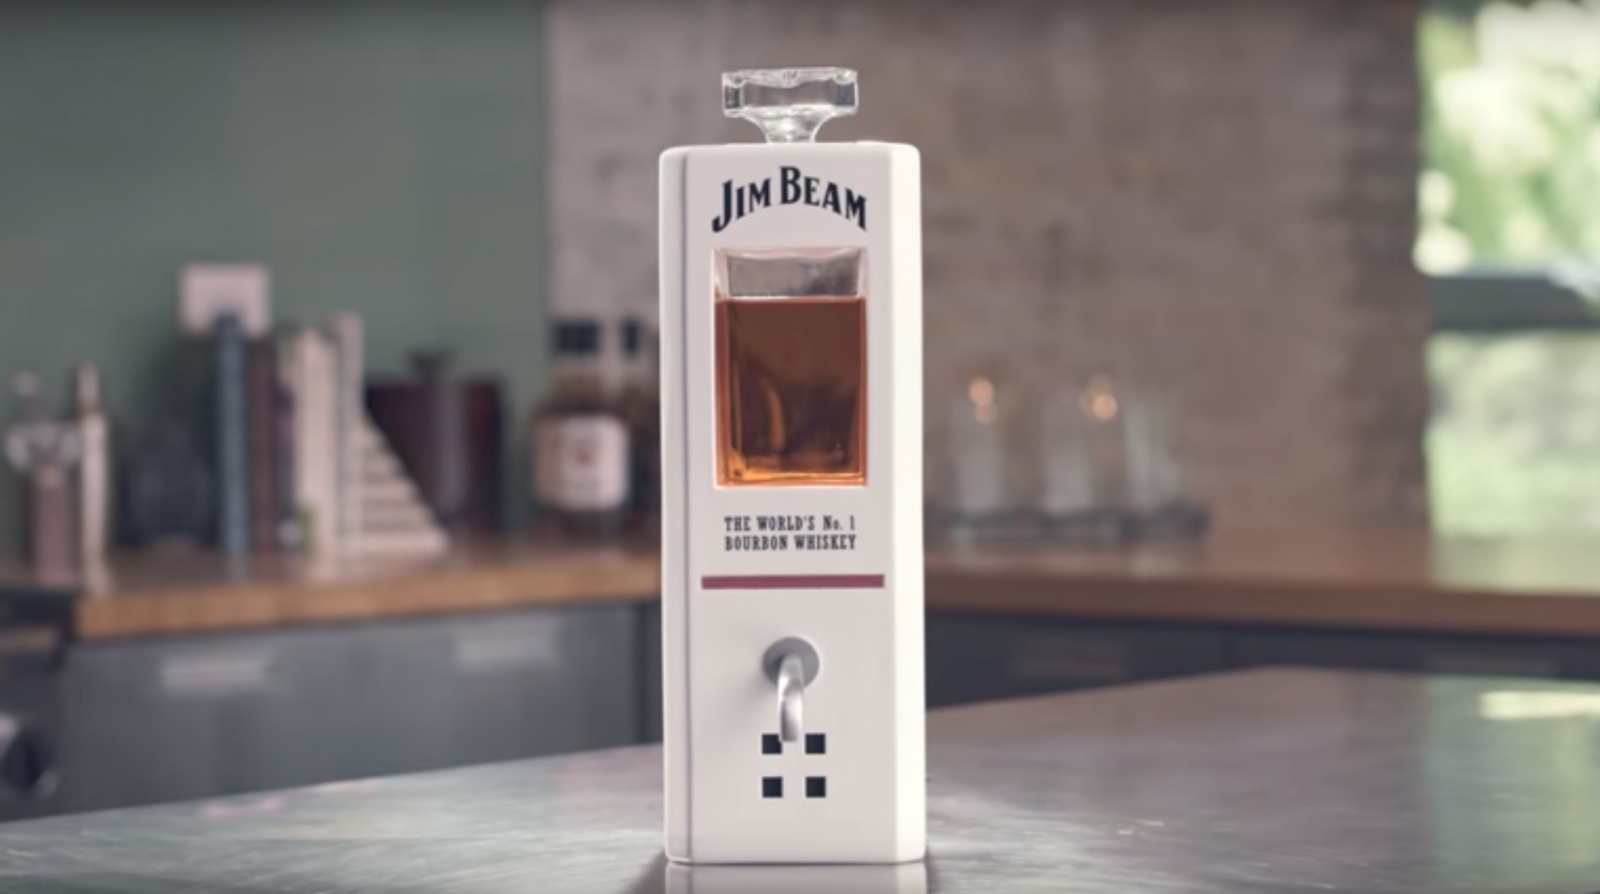 Jim Beam introduces its limited smart decanter for the holidays